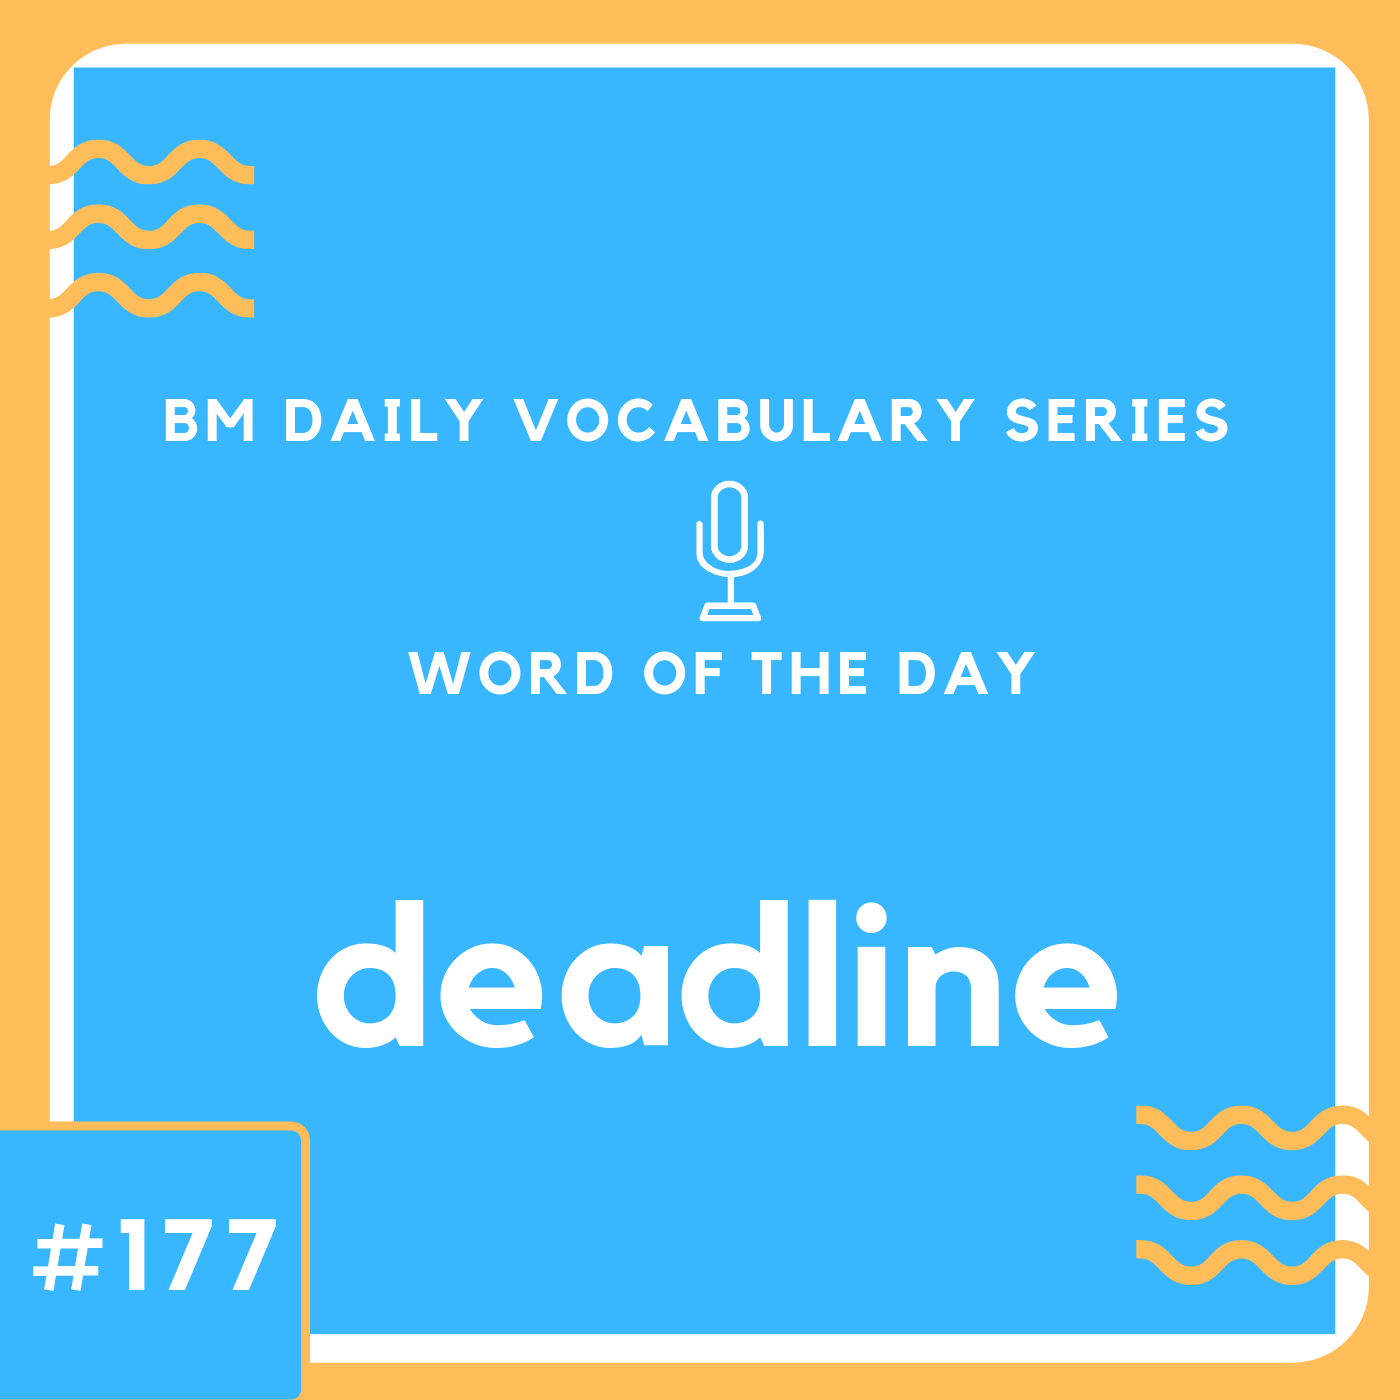 200 BM Daily Vocabulary #177 | deadline